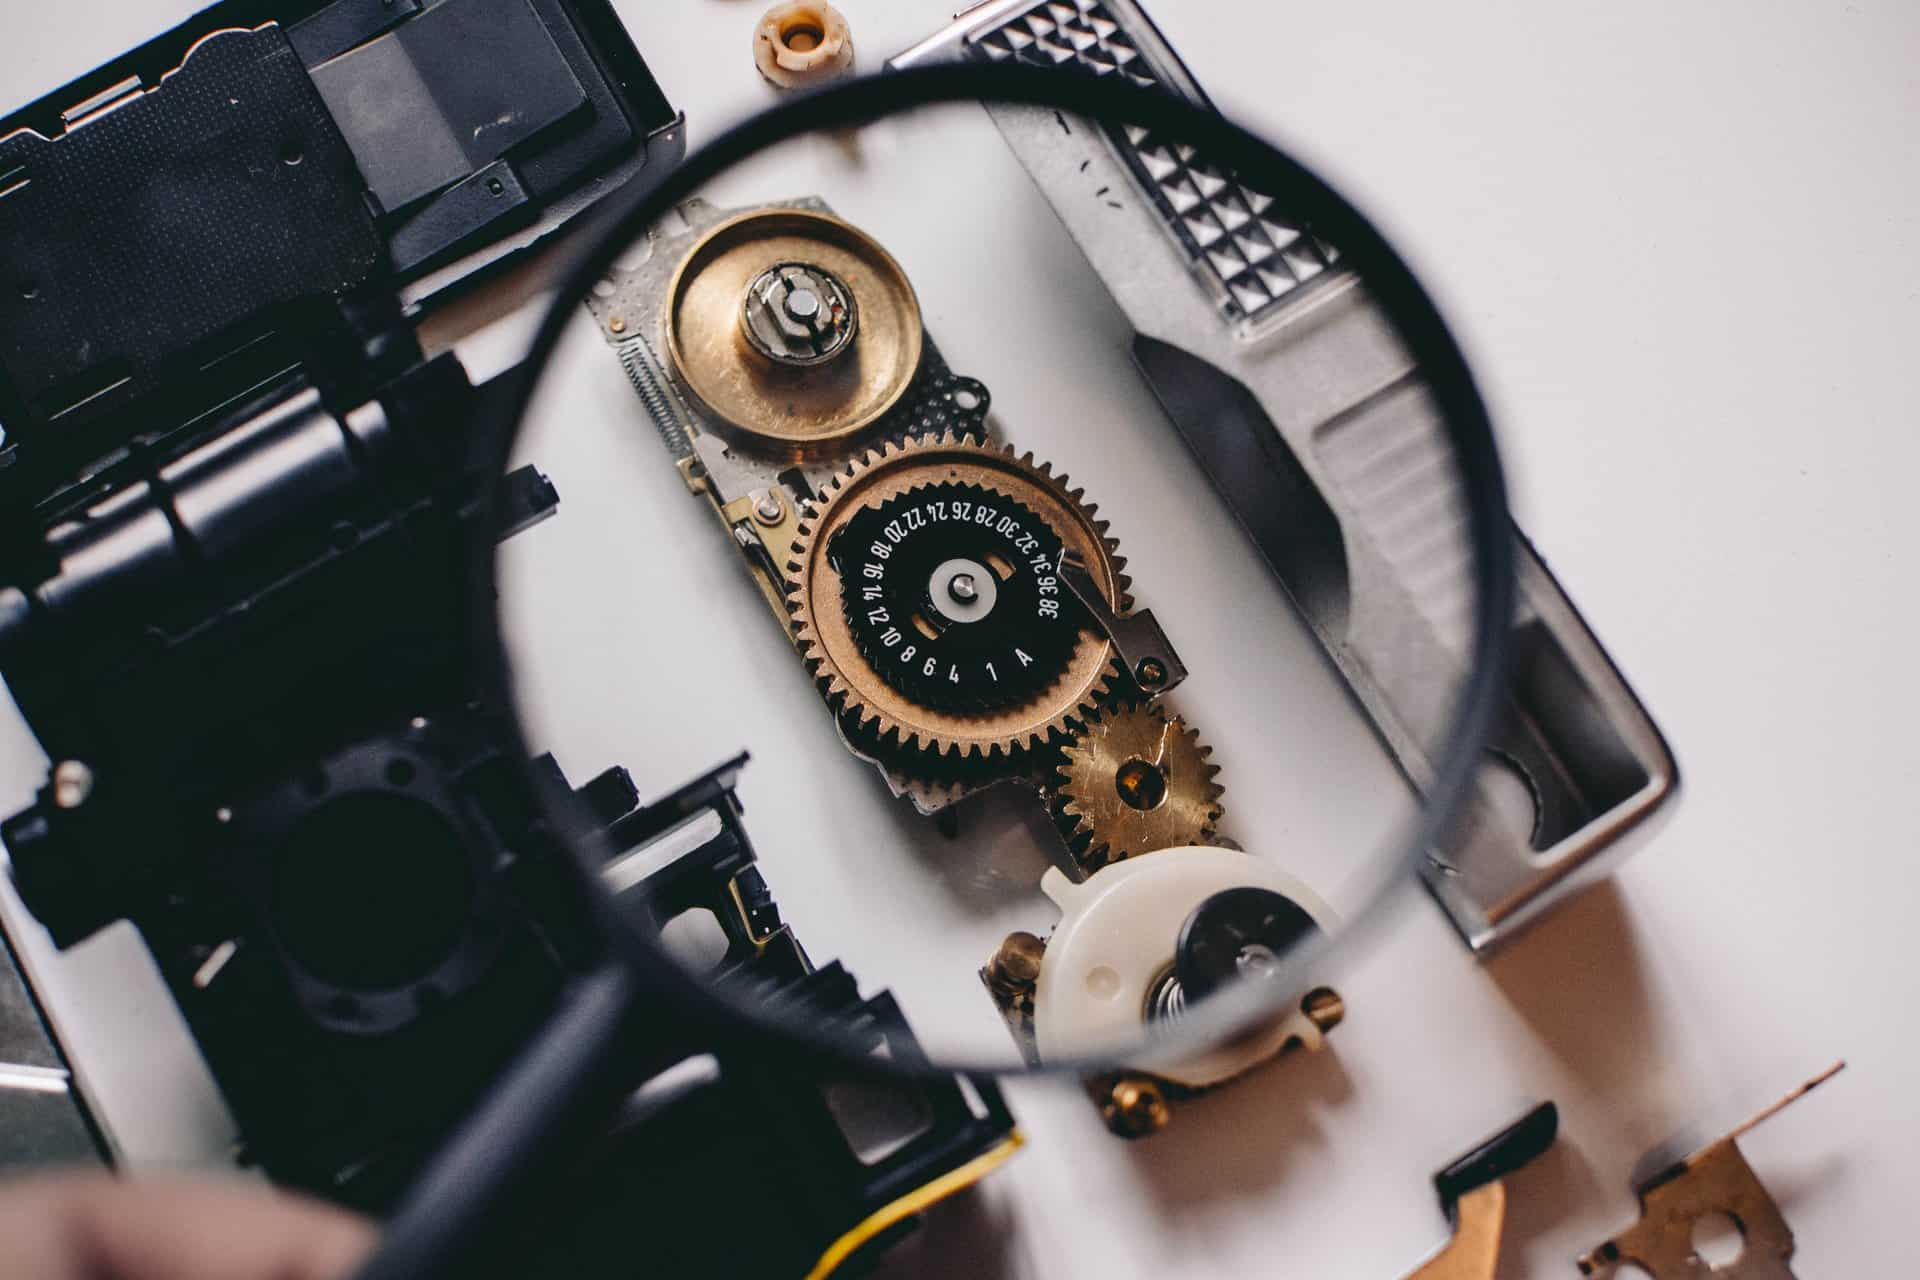 A magnifying glass showing intricate gears.